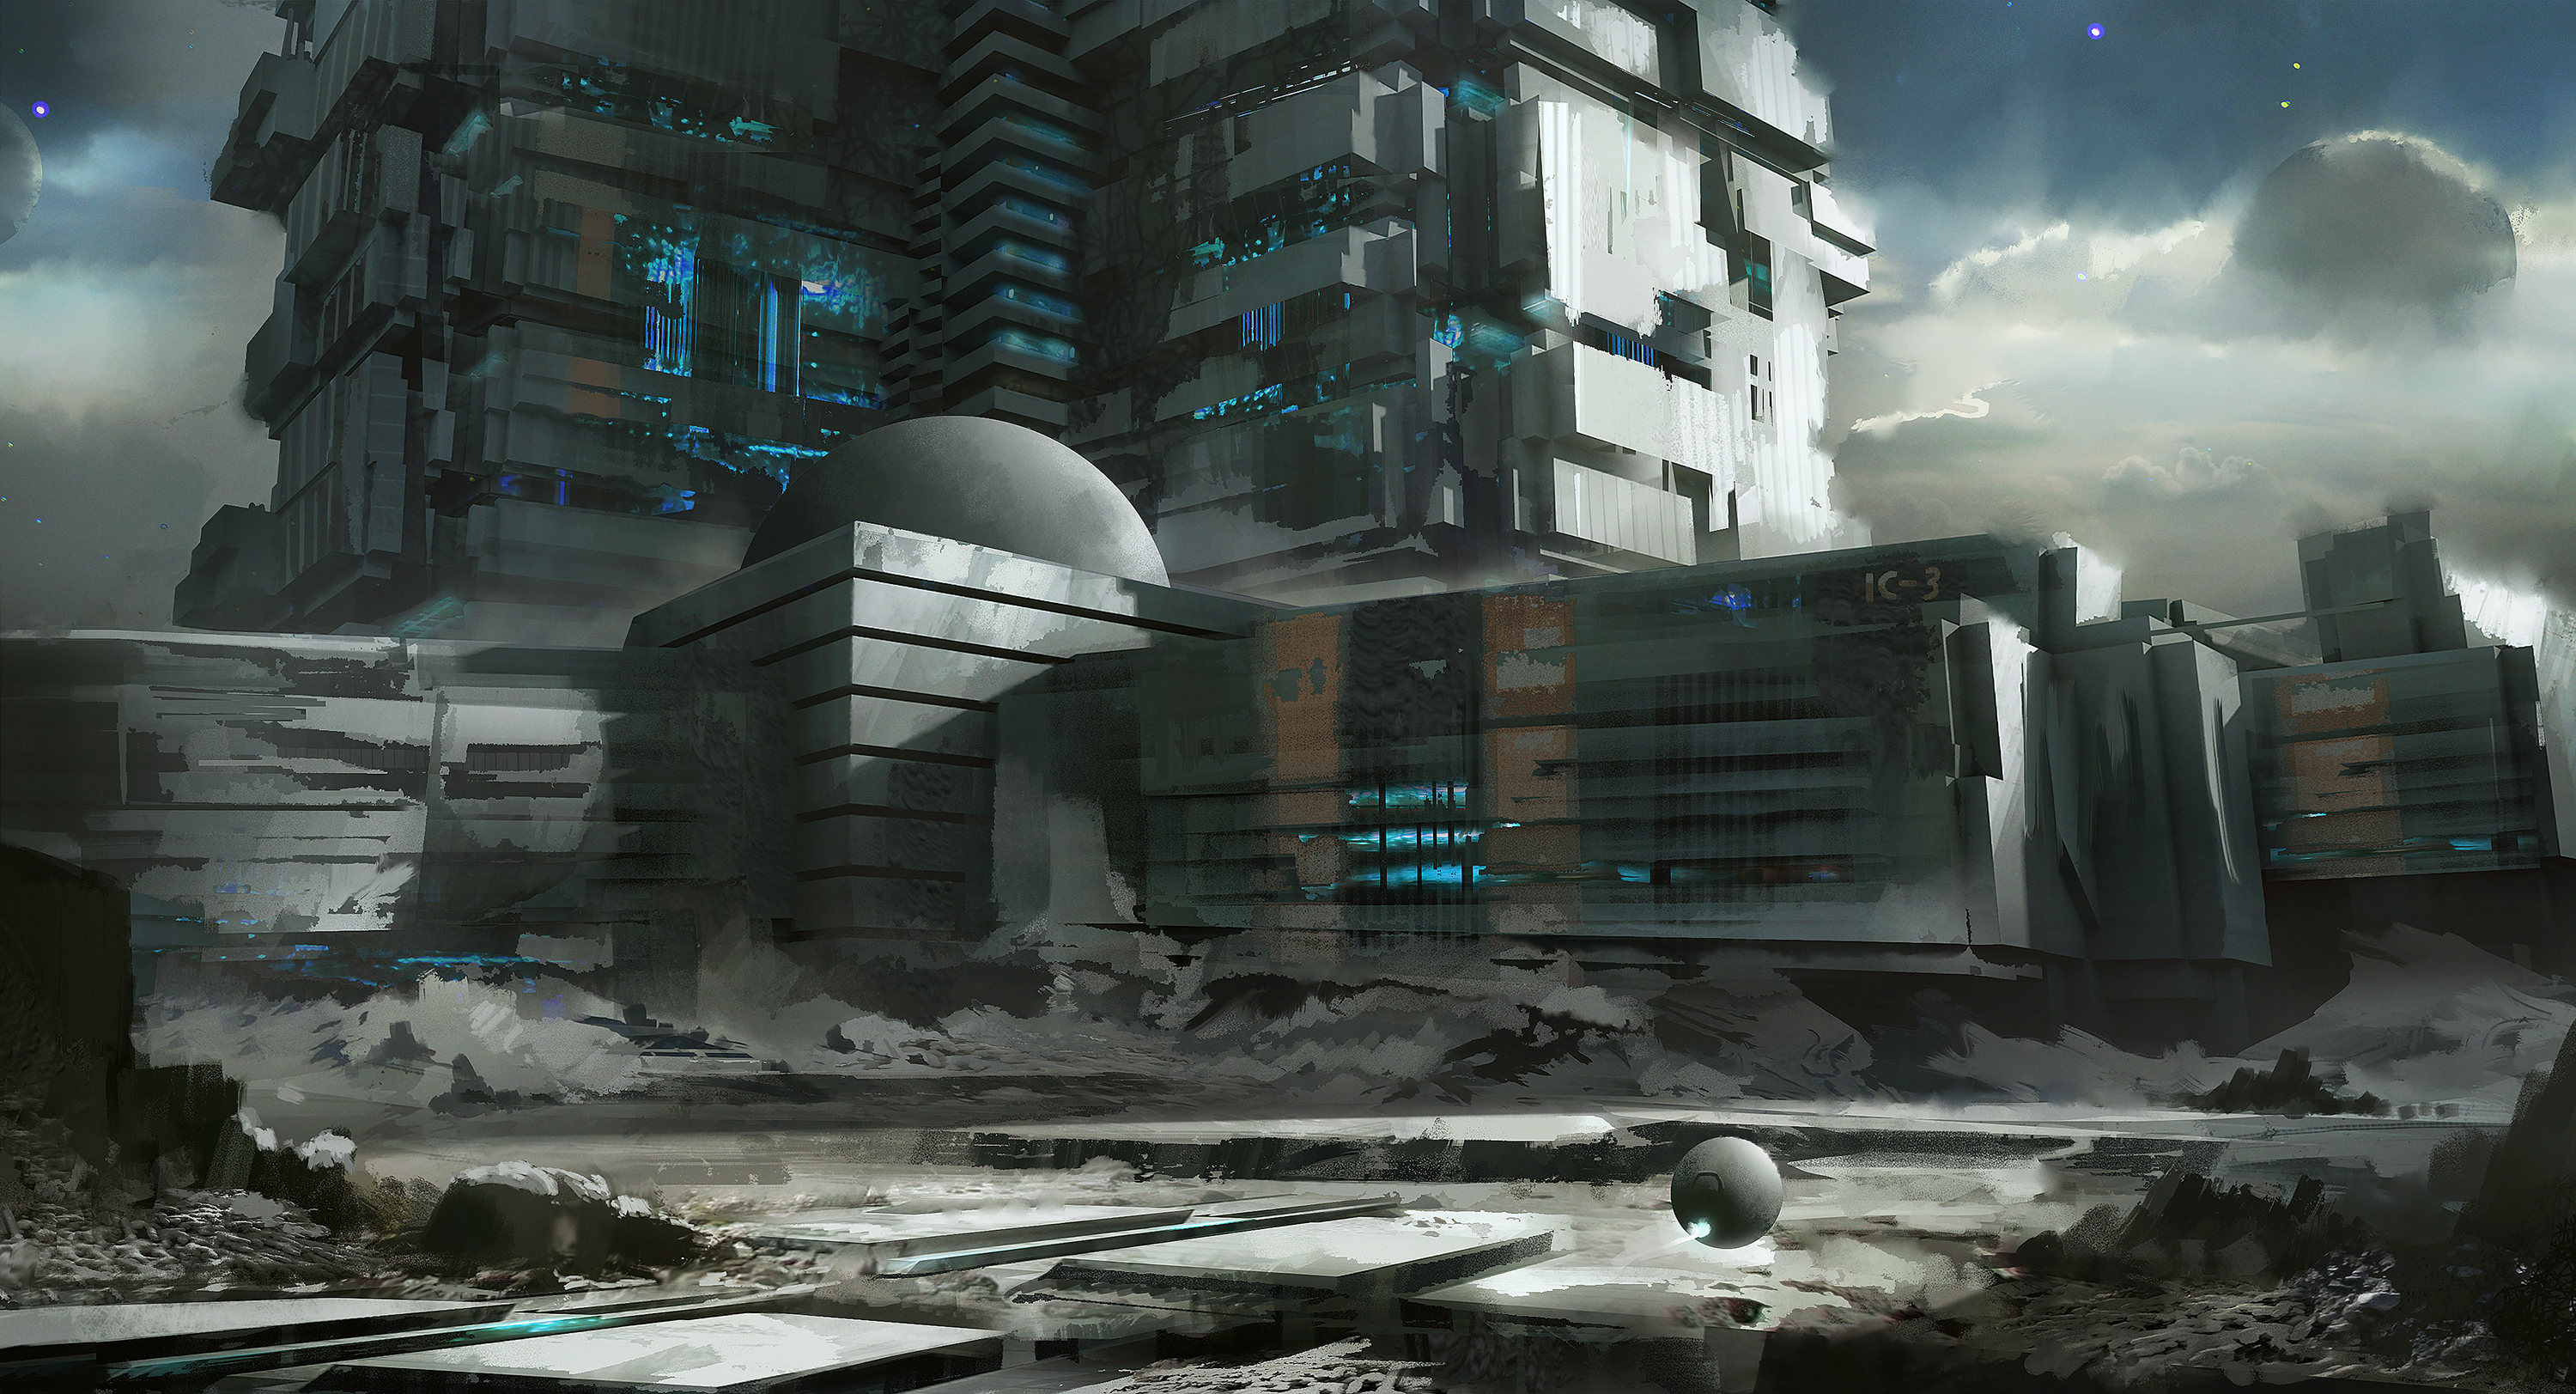 3000x1623 - Sci Fi Building Wallpapers 7